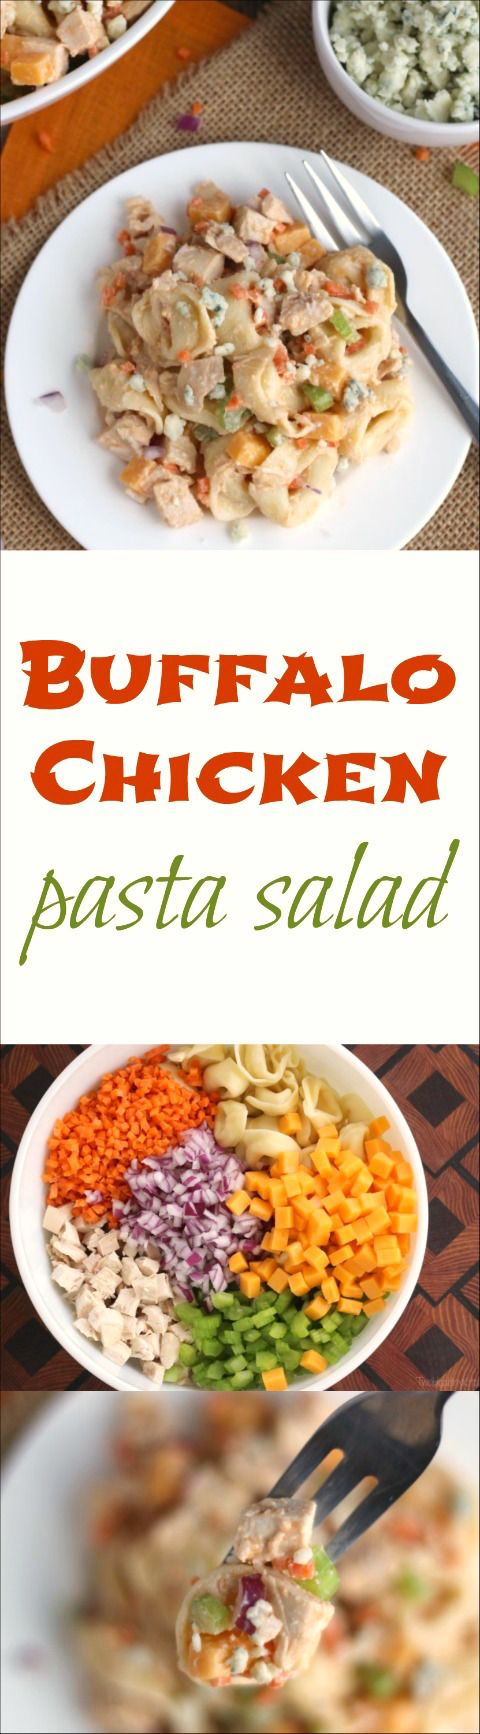 Buffalo Chicken Pasta Salad - Two Healthy Kitchens